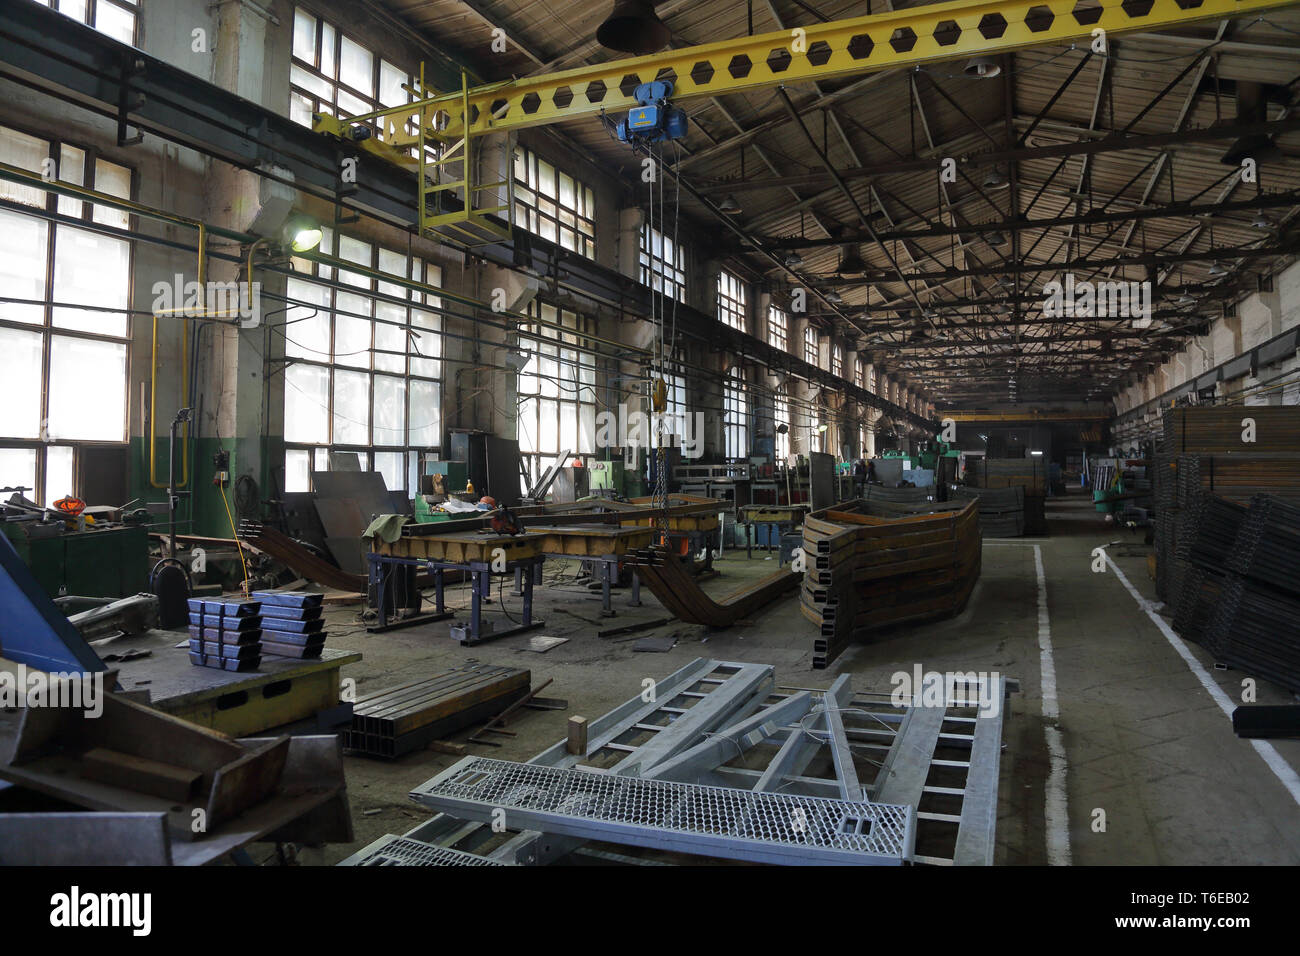 Large metalworking and tool-handling shop at the manufacturing plant - Stock Image